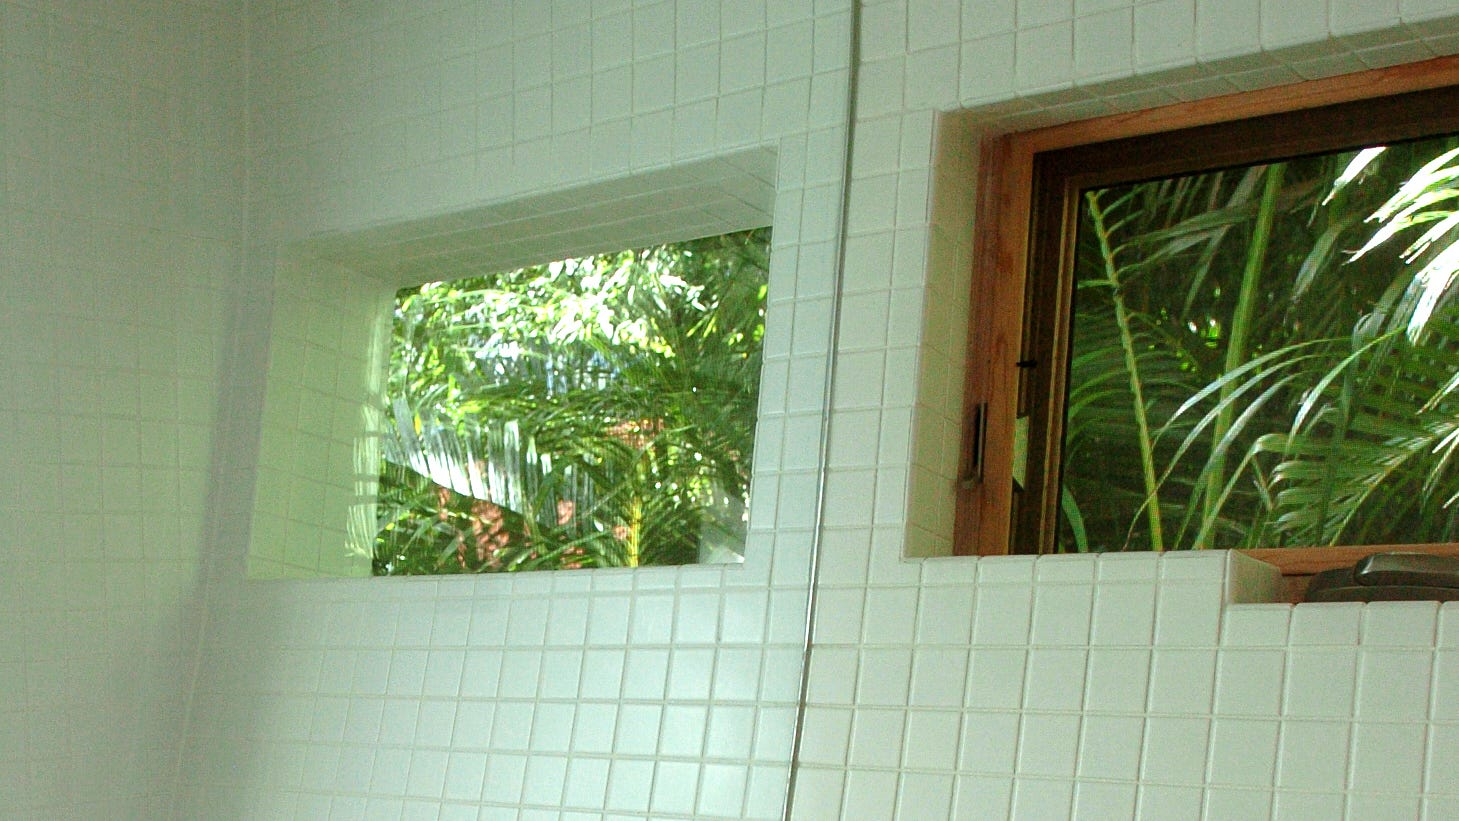 The Casey Key Guest House's curved walls were a challenge in the bathroom. The house was designed by Jerry Sparkman of Sweet Sparkman Architects and built by Michael K. Walker. Sparkman recently won an award from Marvin Windows and Doors for the house's fenestration. HERALD-TRIBUNE STAFF FILE PHOTO / HAROLD BUBIL